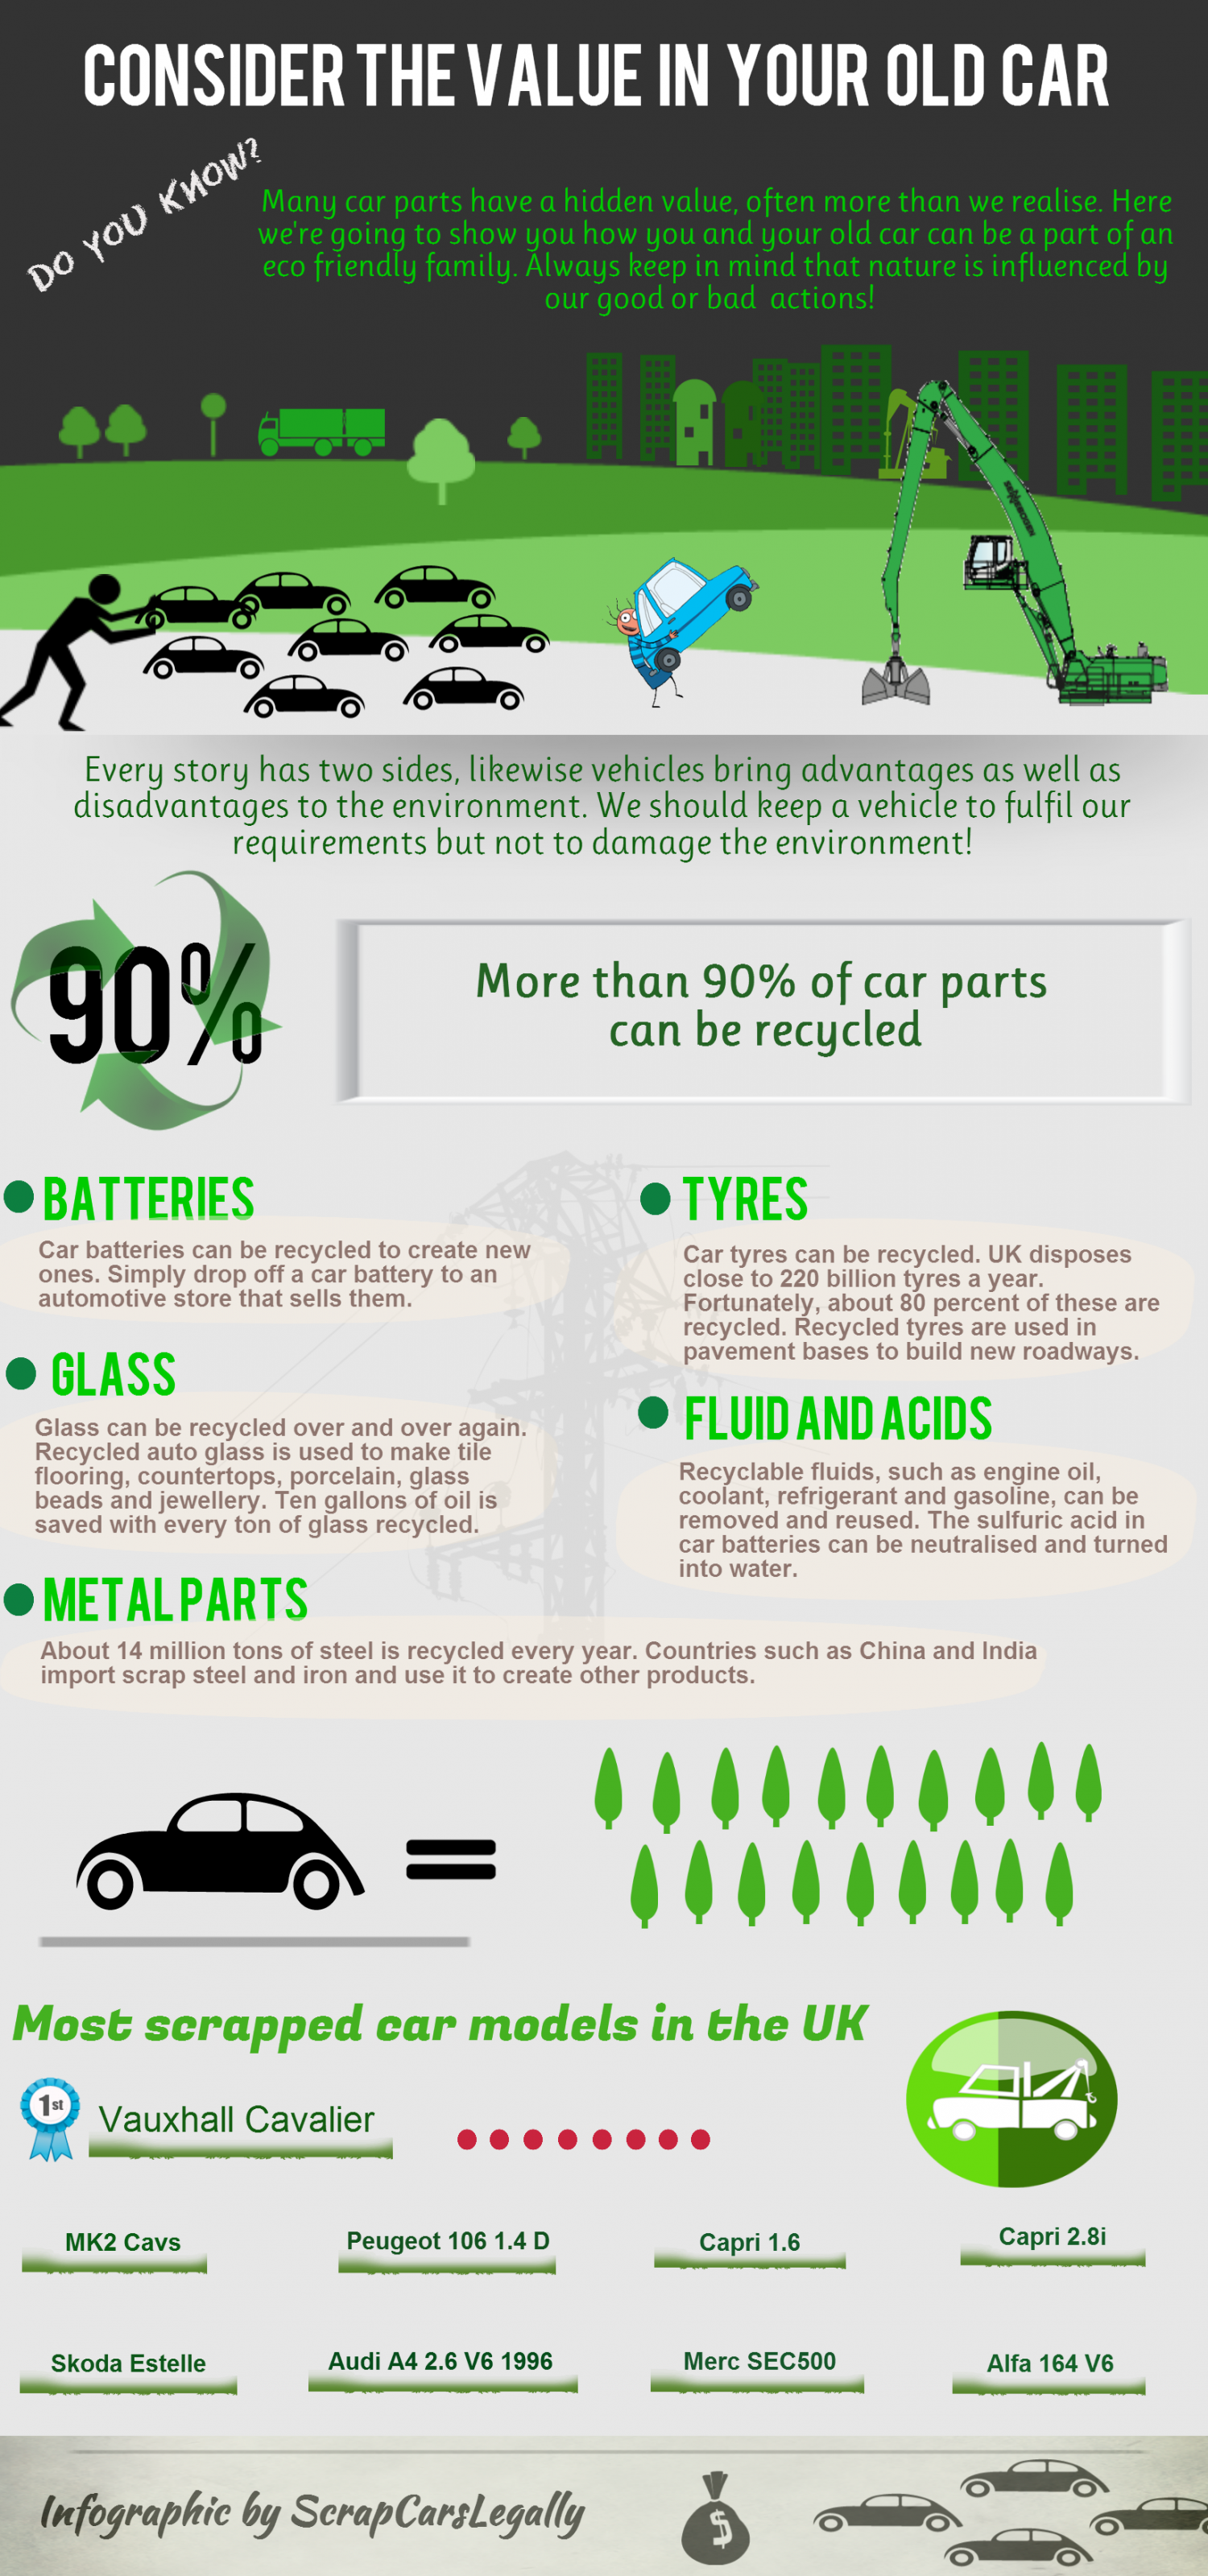 CONSIDER THE VALUE IN YOUR OLD CAR Infographic